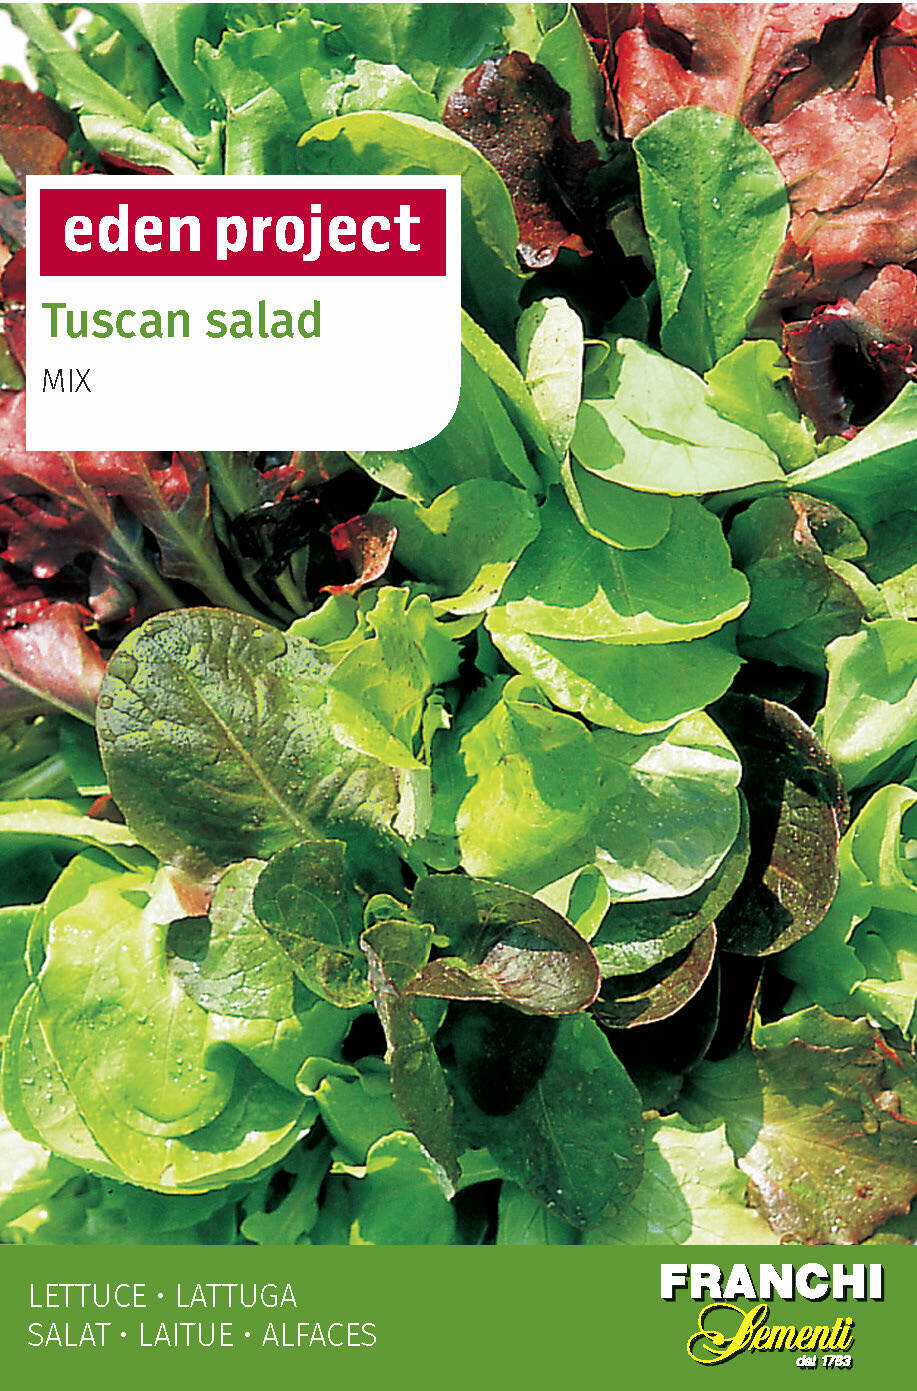 Tuscan Salad Mix - Lactuca sativa